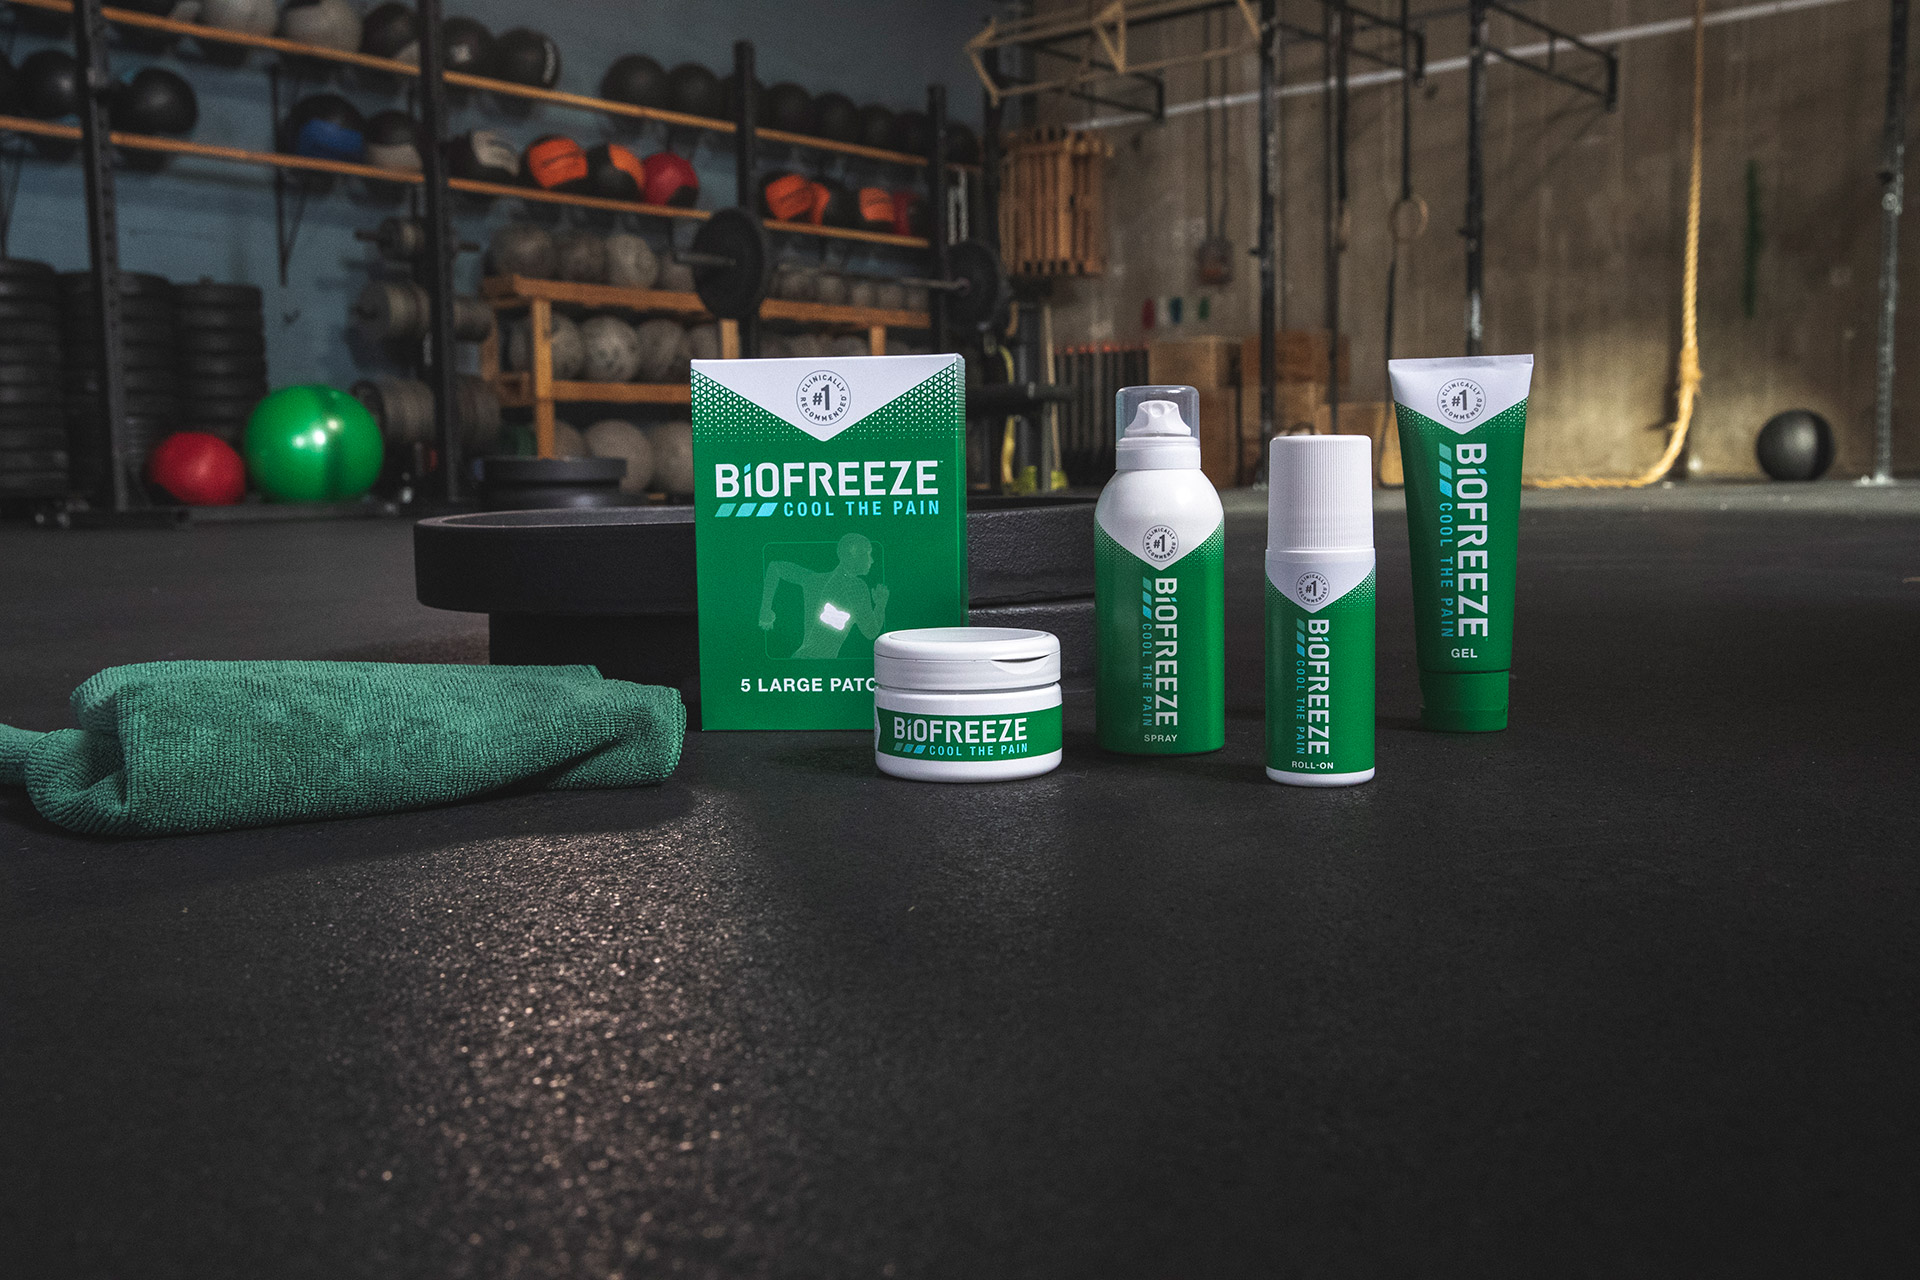 Biofreeze Product line shot by The Many